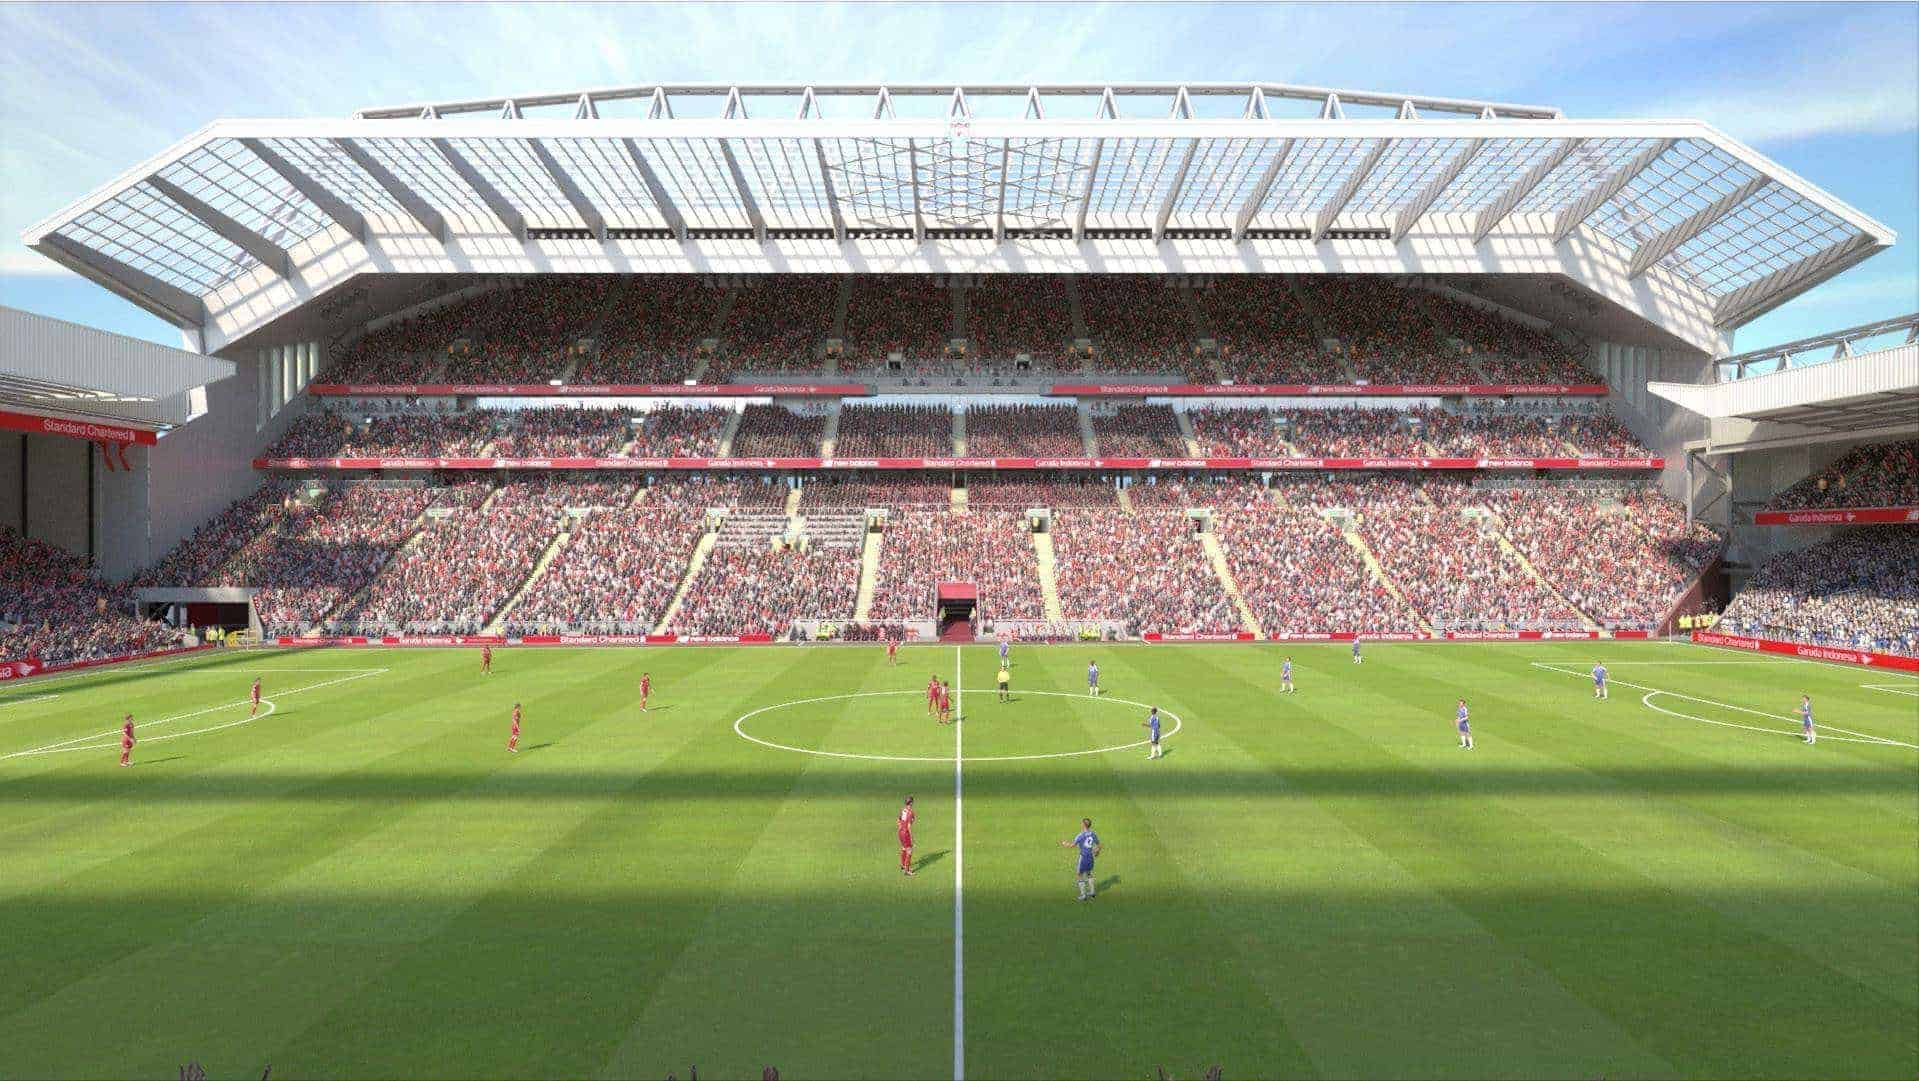 Photos: How Anfield's New Main Stand Will Look Once Complete